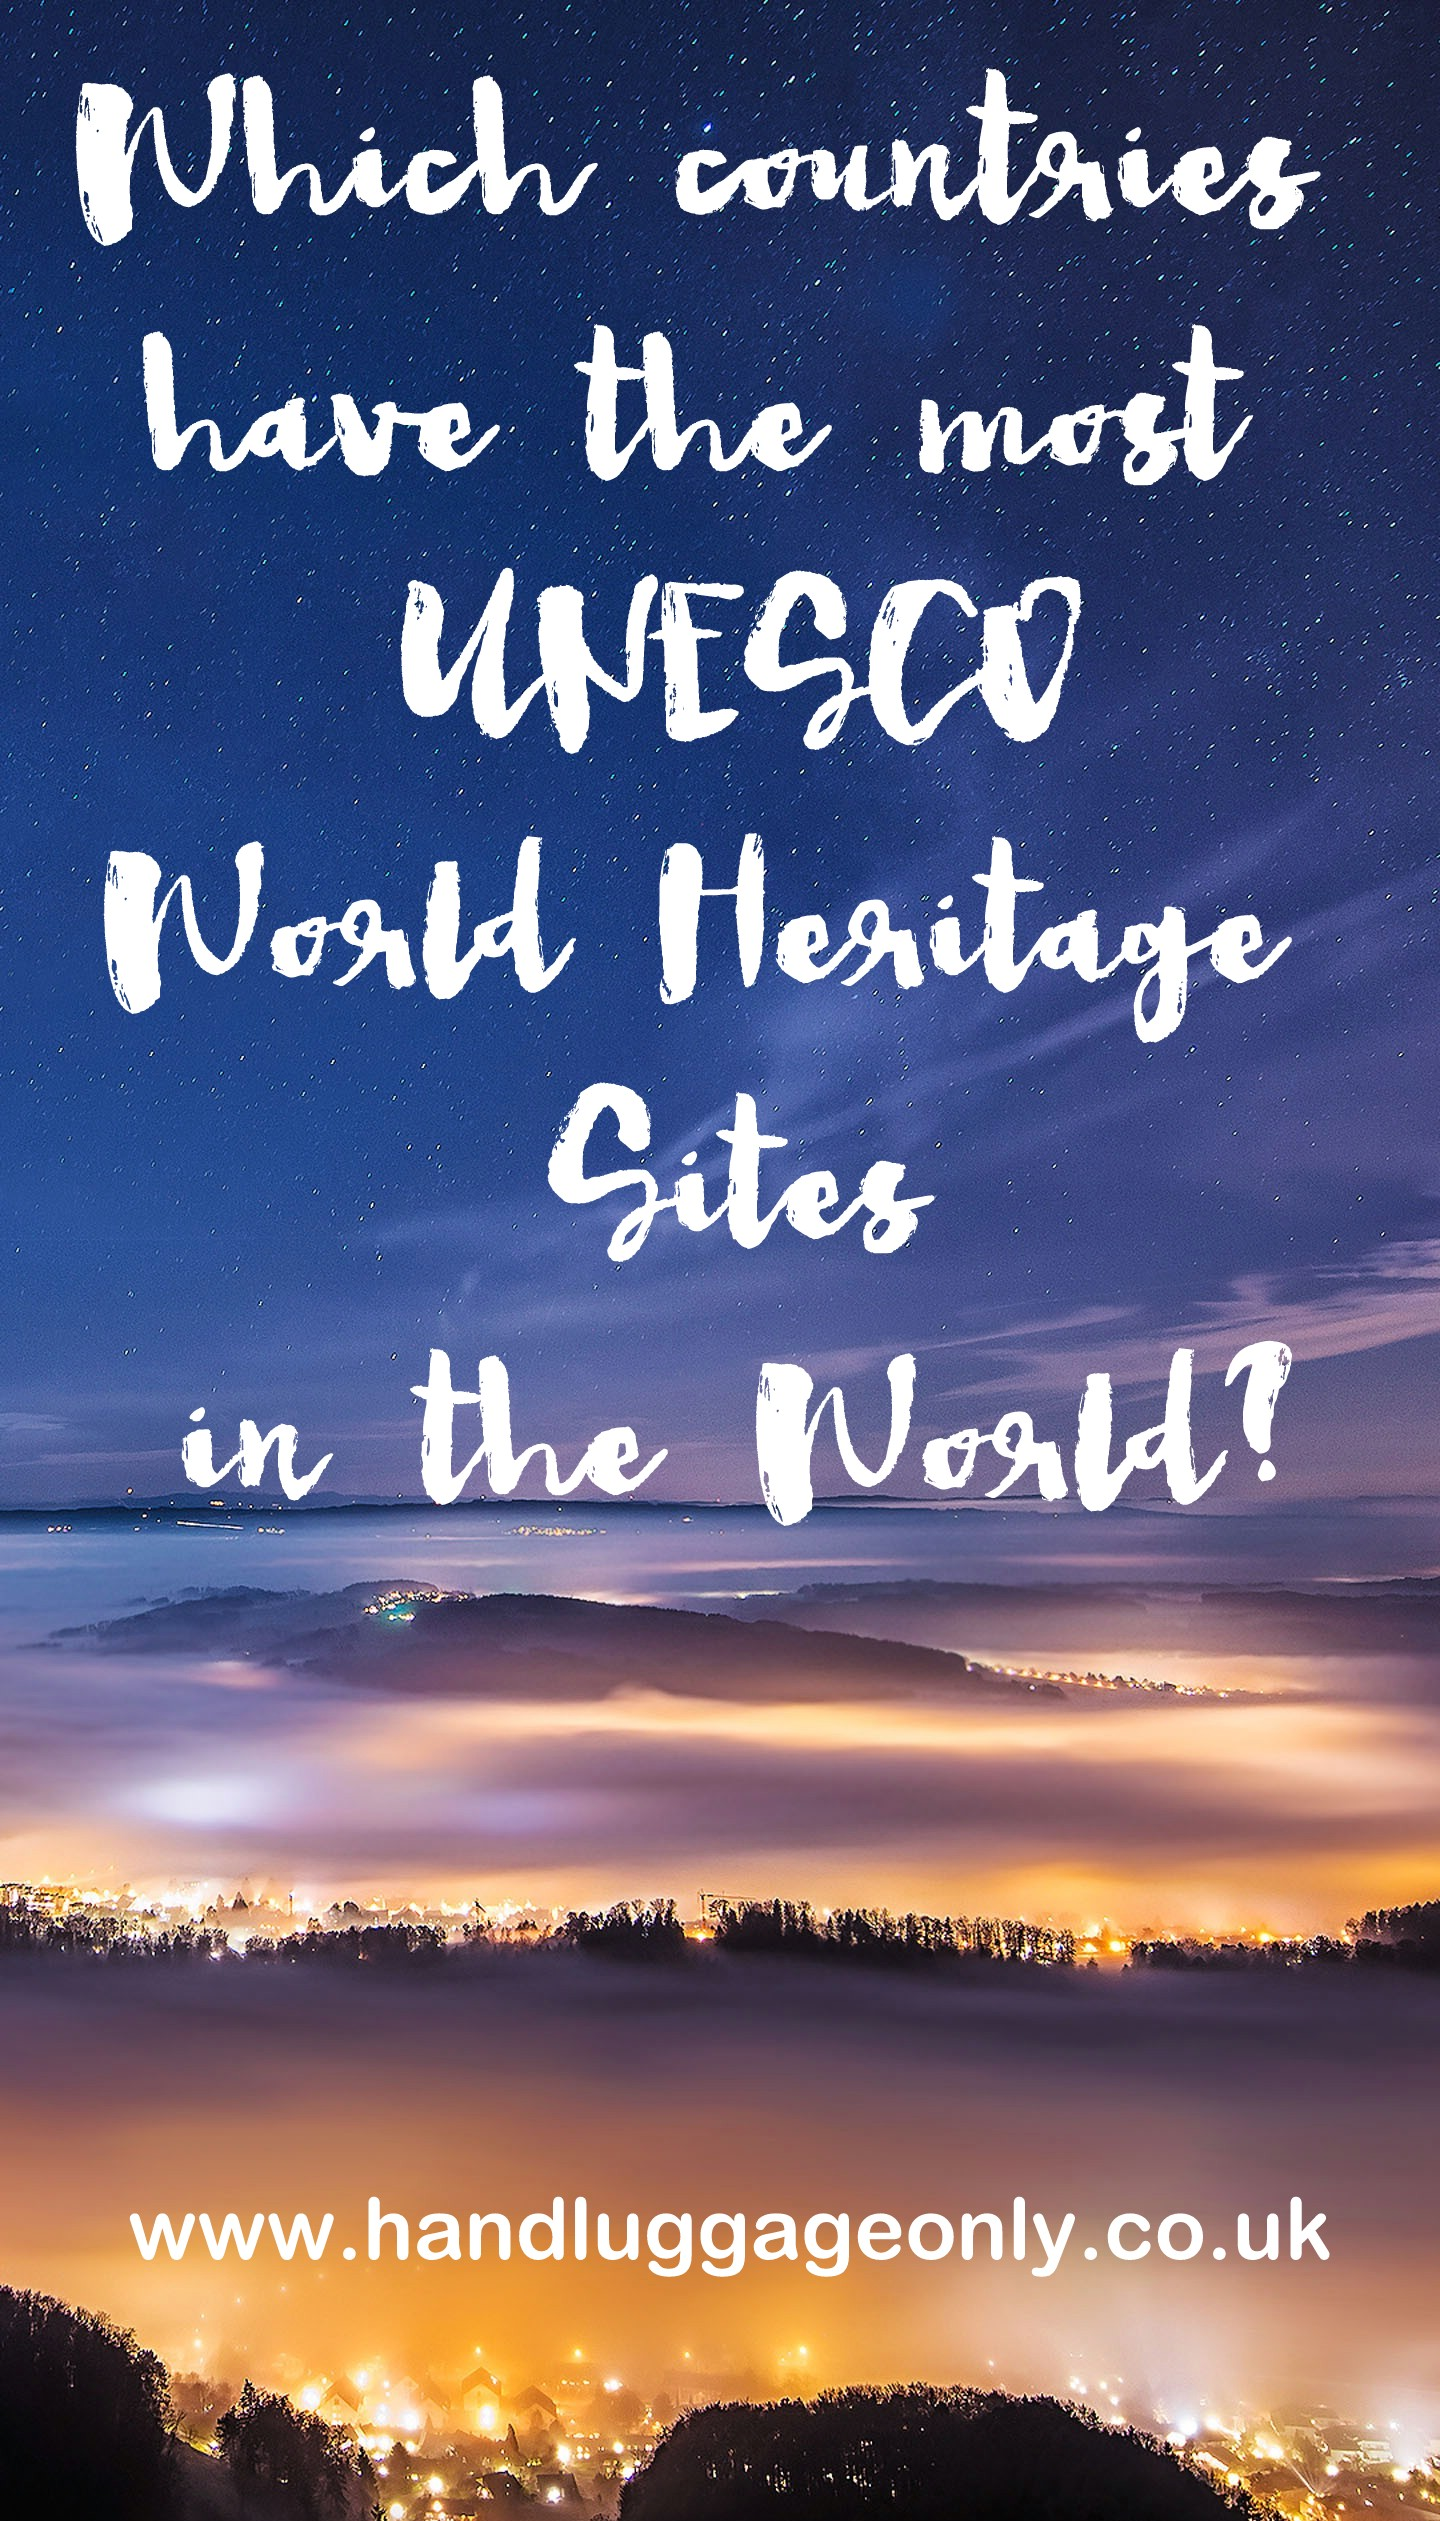 These 7 Countries Have The Most UNESCO World Heritage Sites In The World!